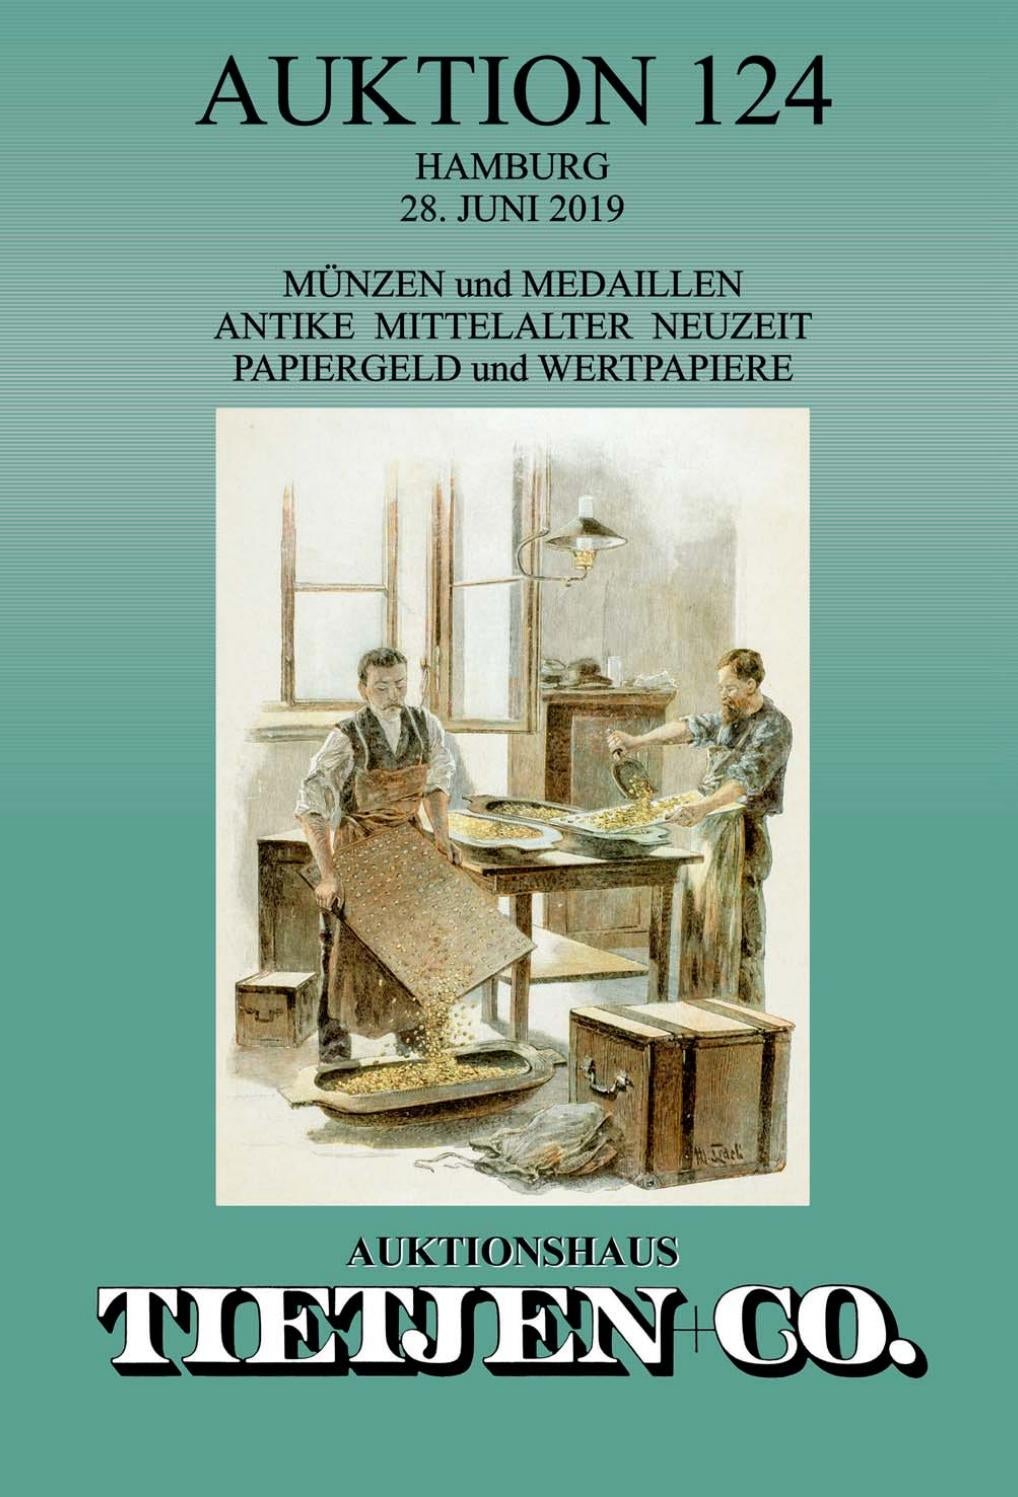 Auction 124 Tietjen co Auktionshaus Issuu By fg7vmIYb6y